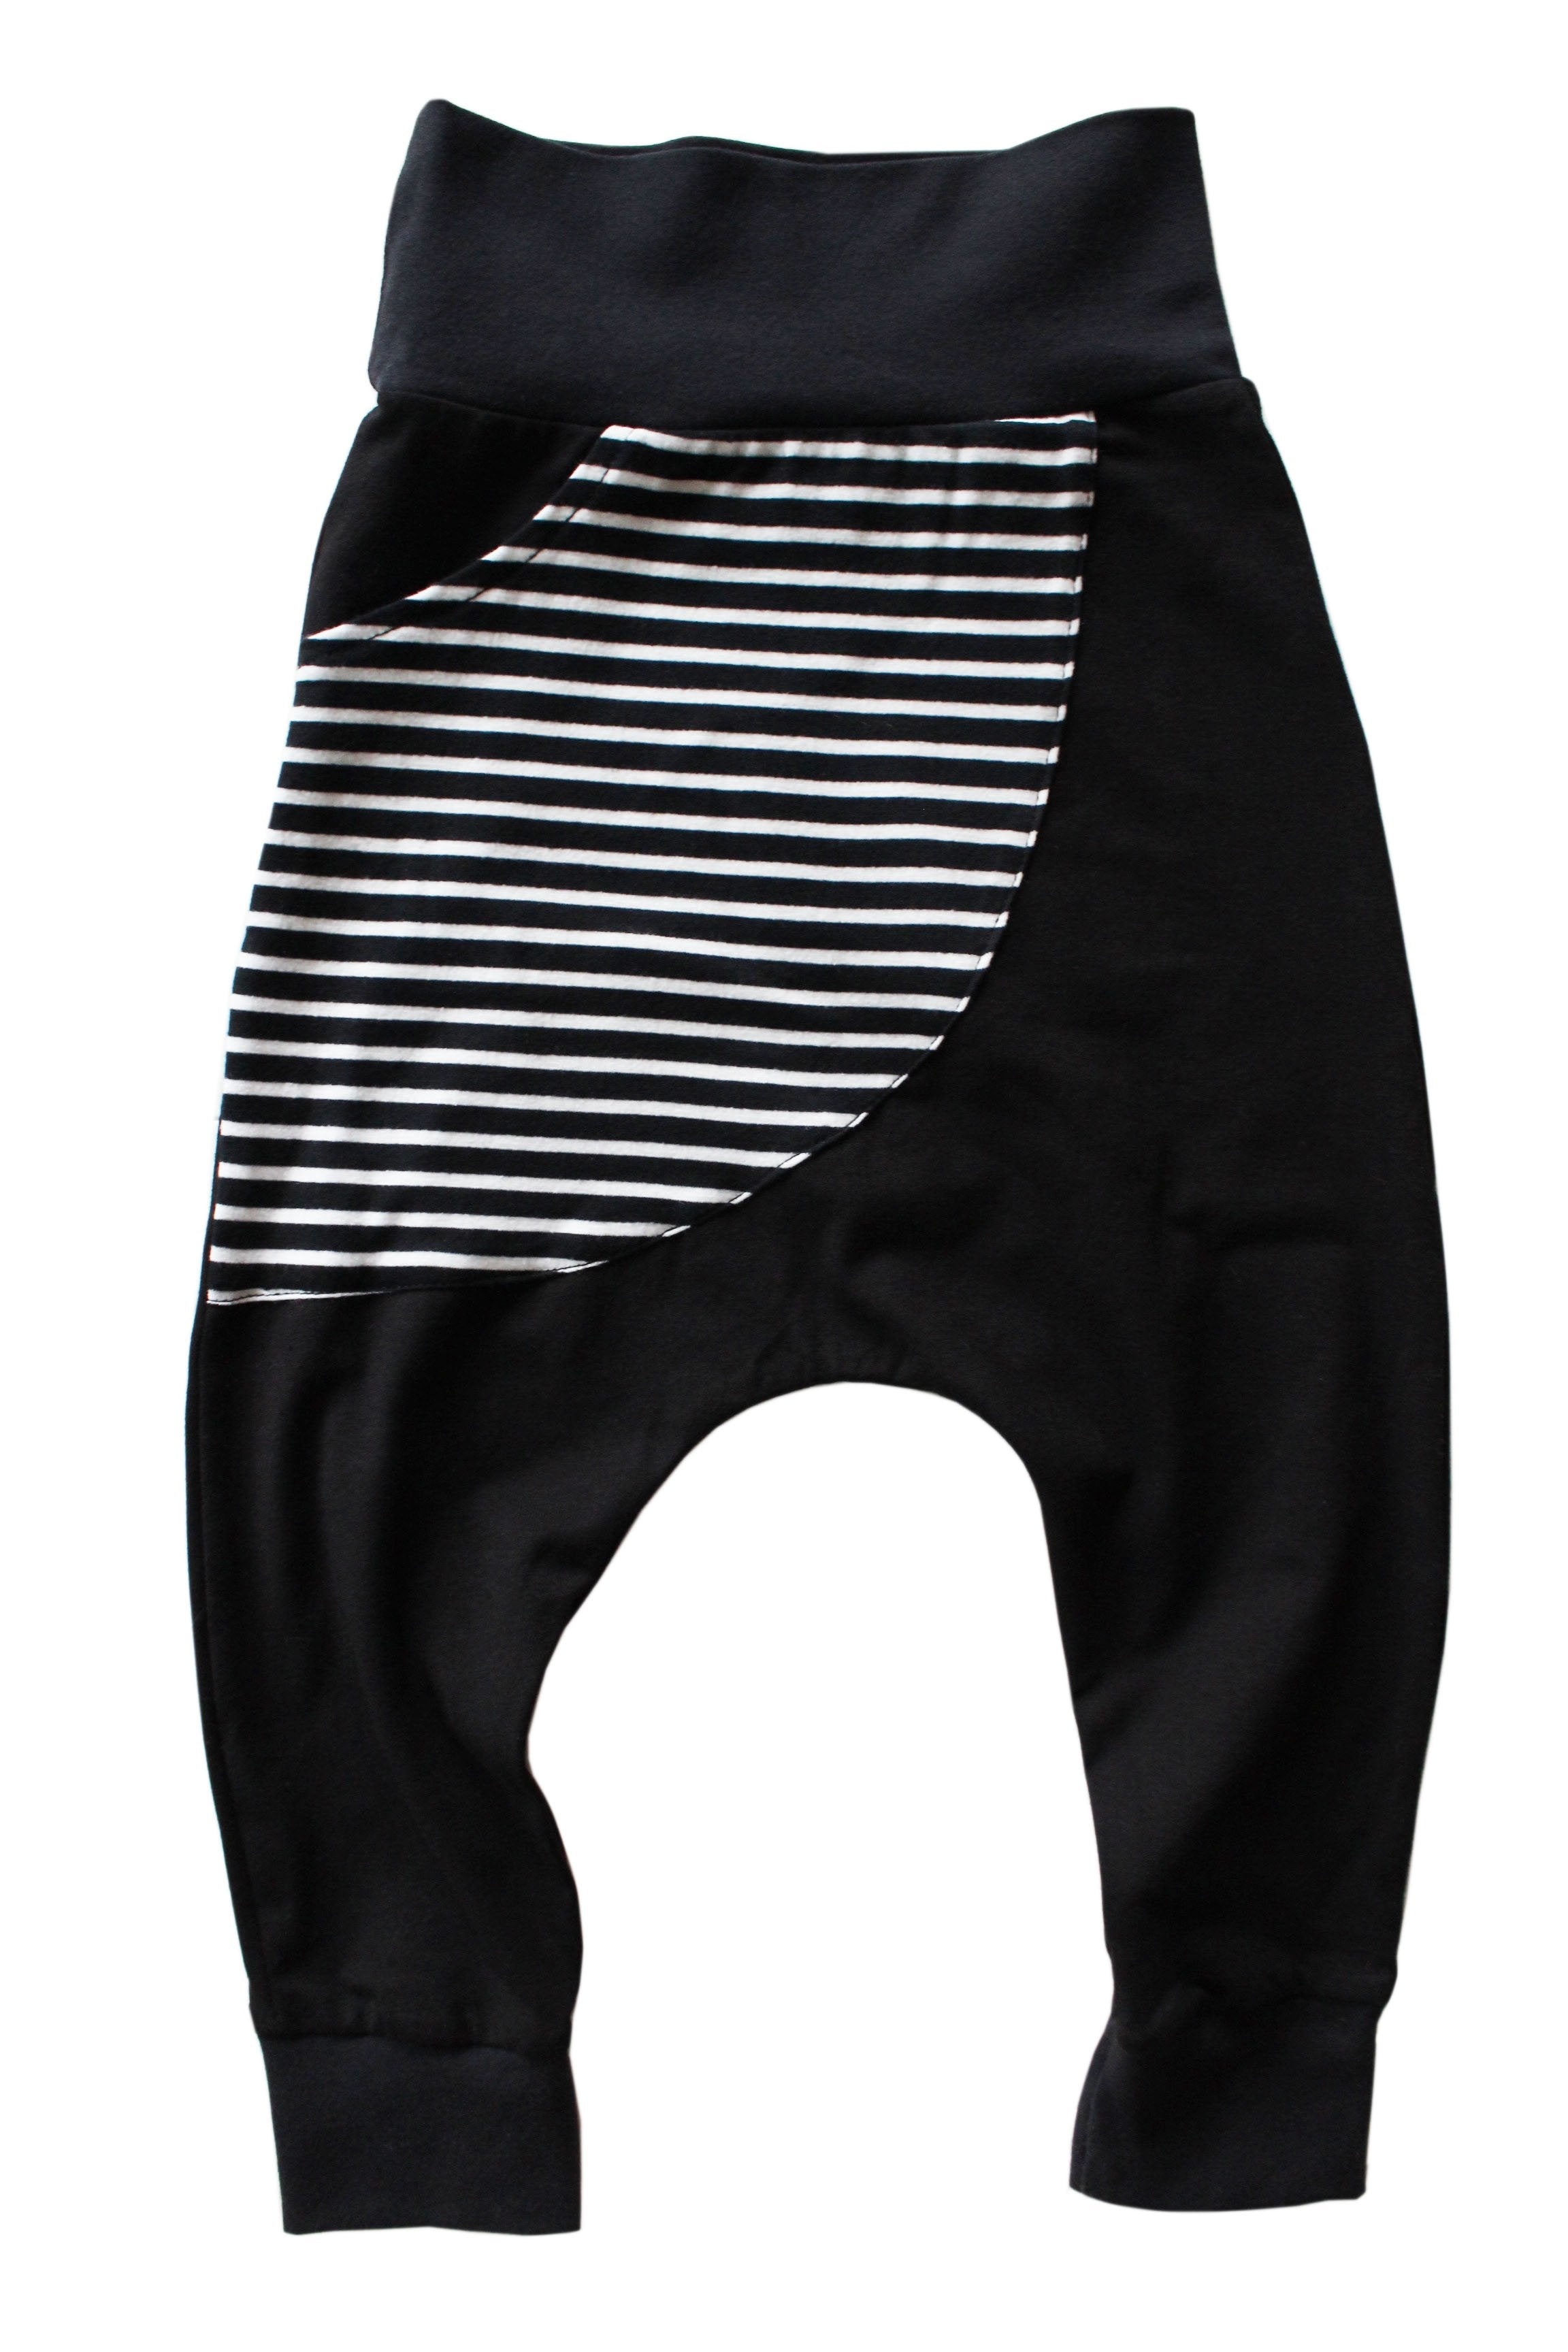 "STRIPE ""KANGAROO"" POCKET HAREMS"